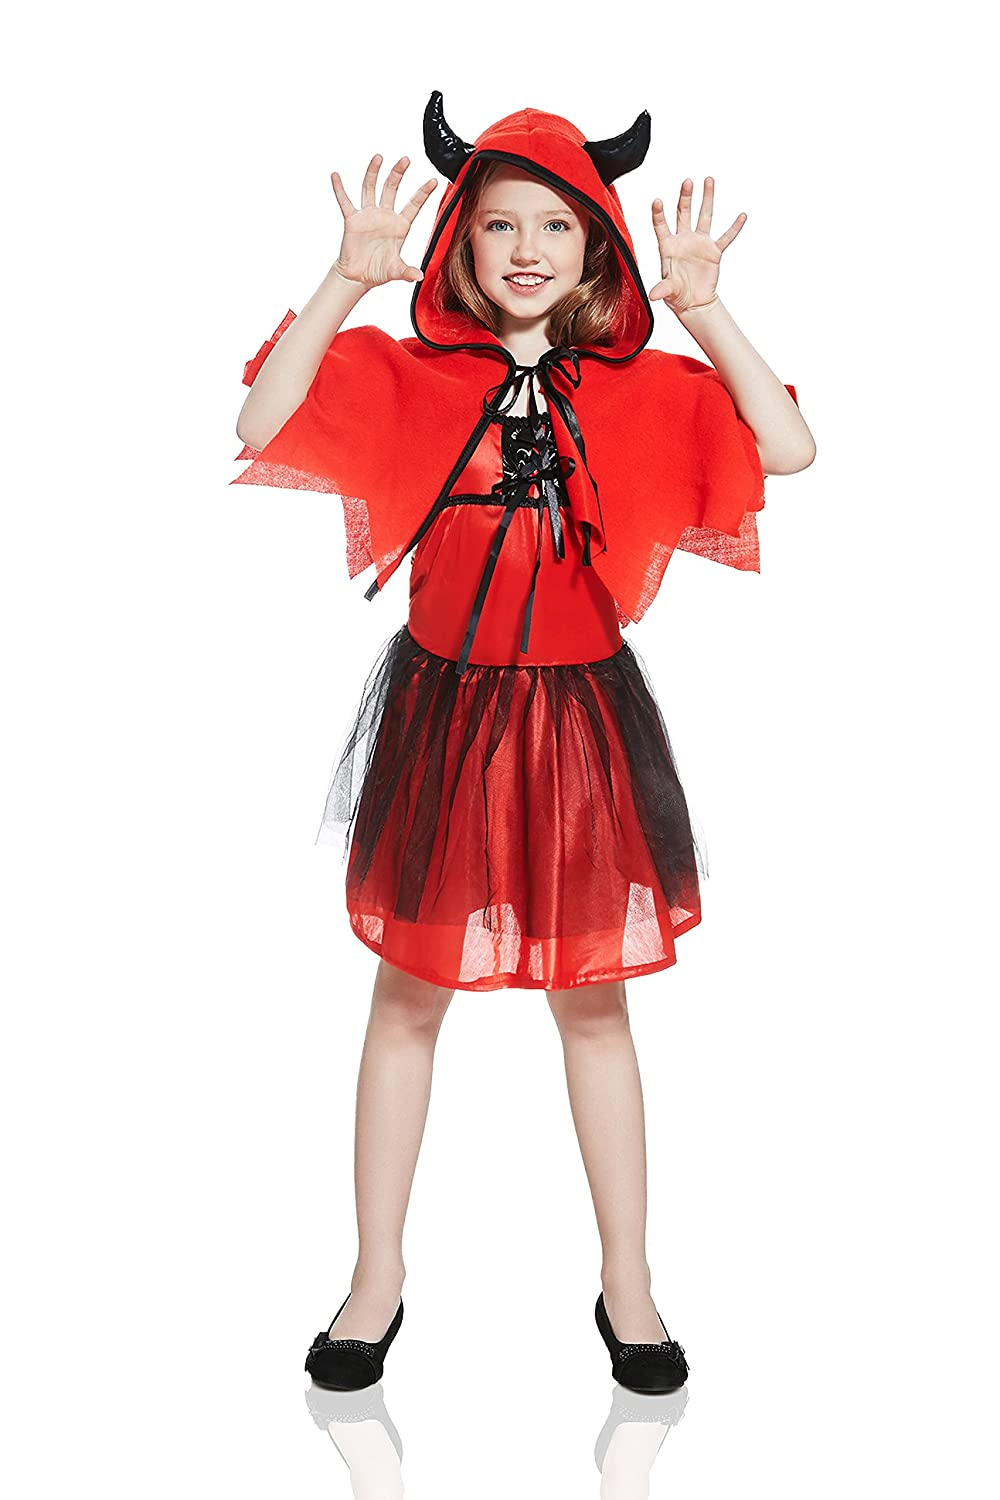 09698522aac Buy Kids Girls Little Devil Costume Shoulder Cape Halloween Party Evil  Demon Dress Up (3-6 years